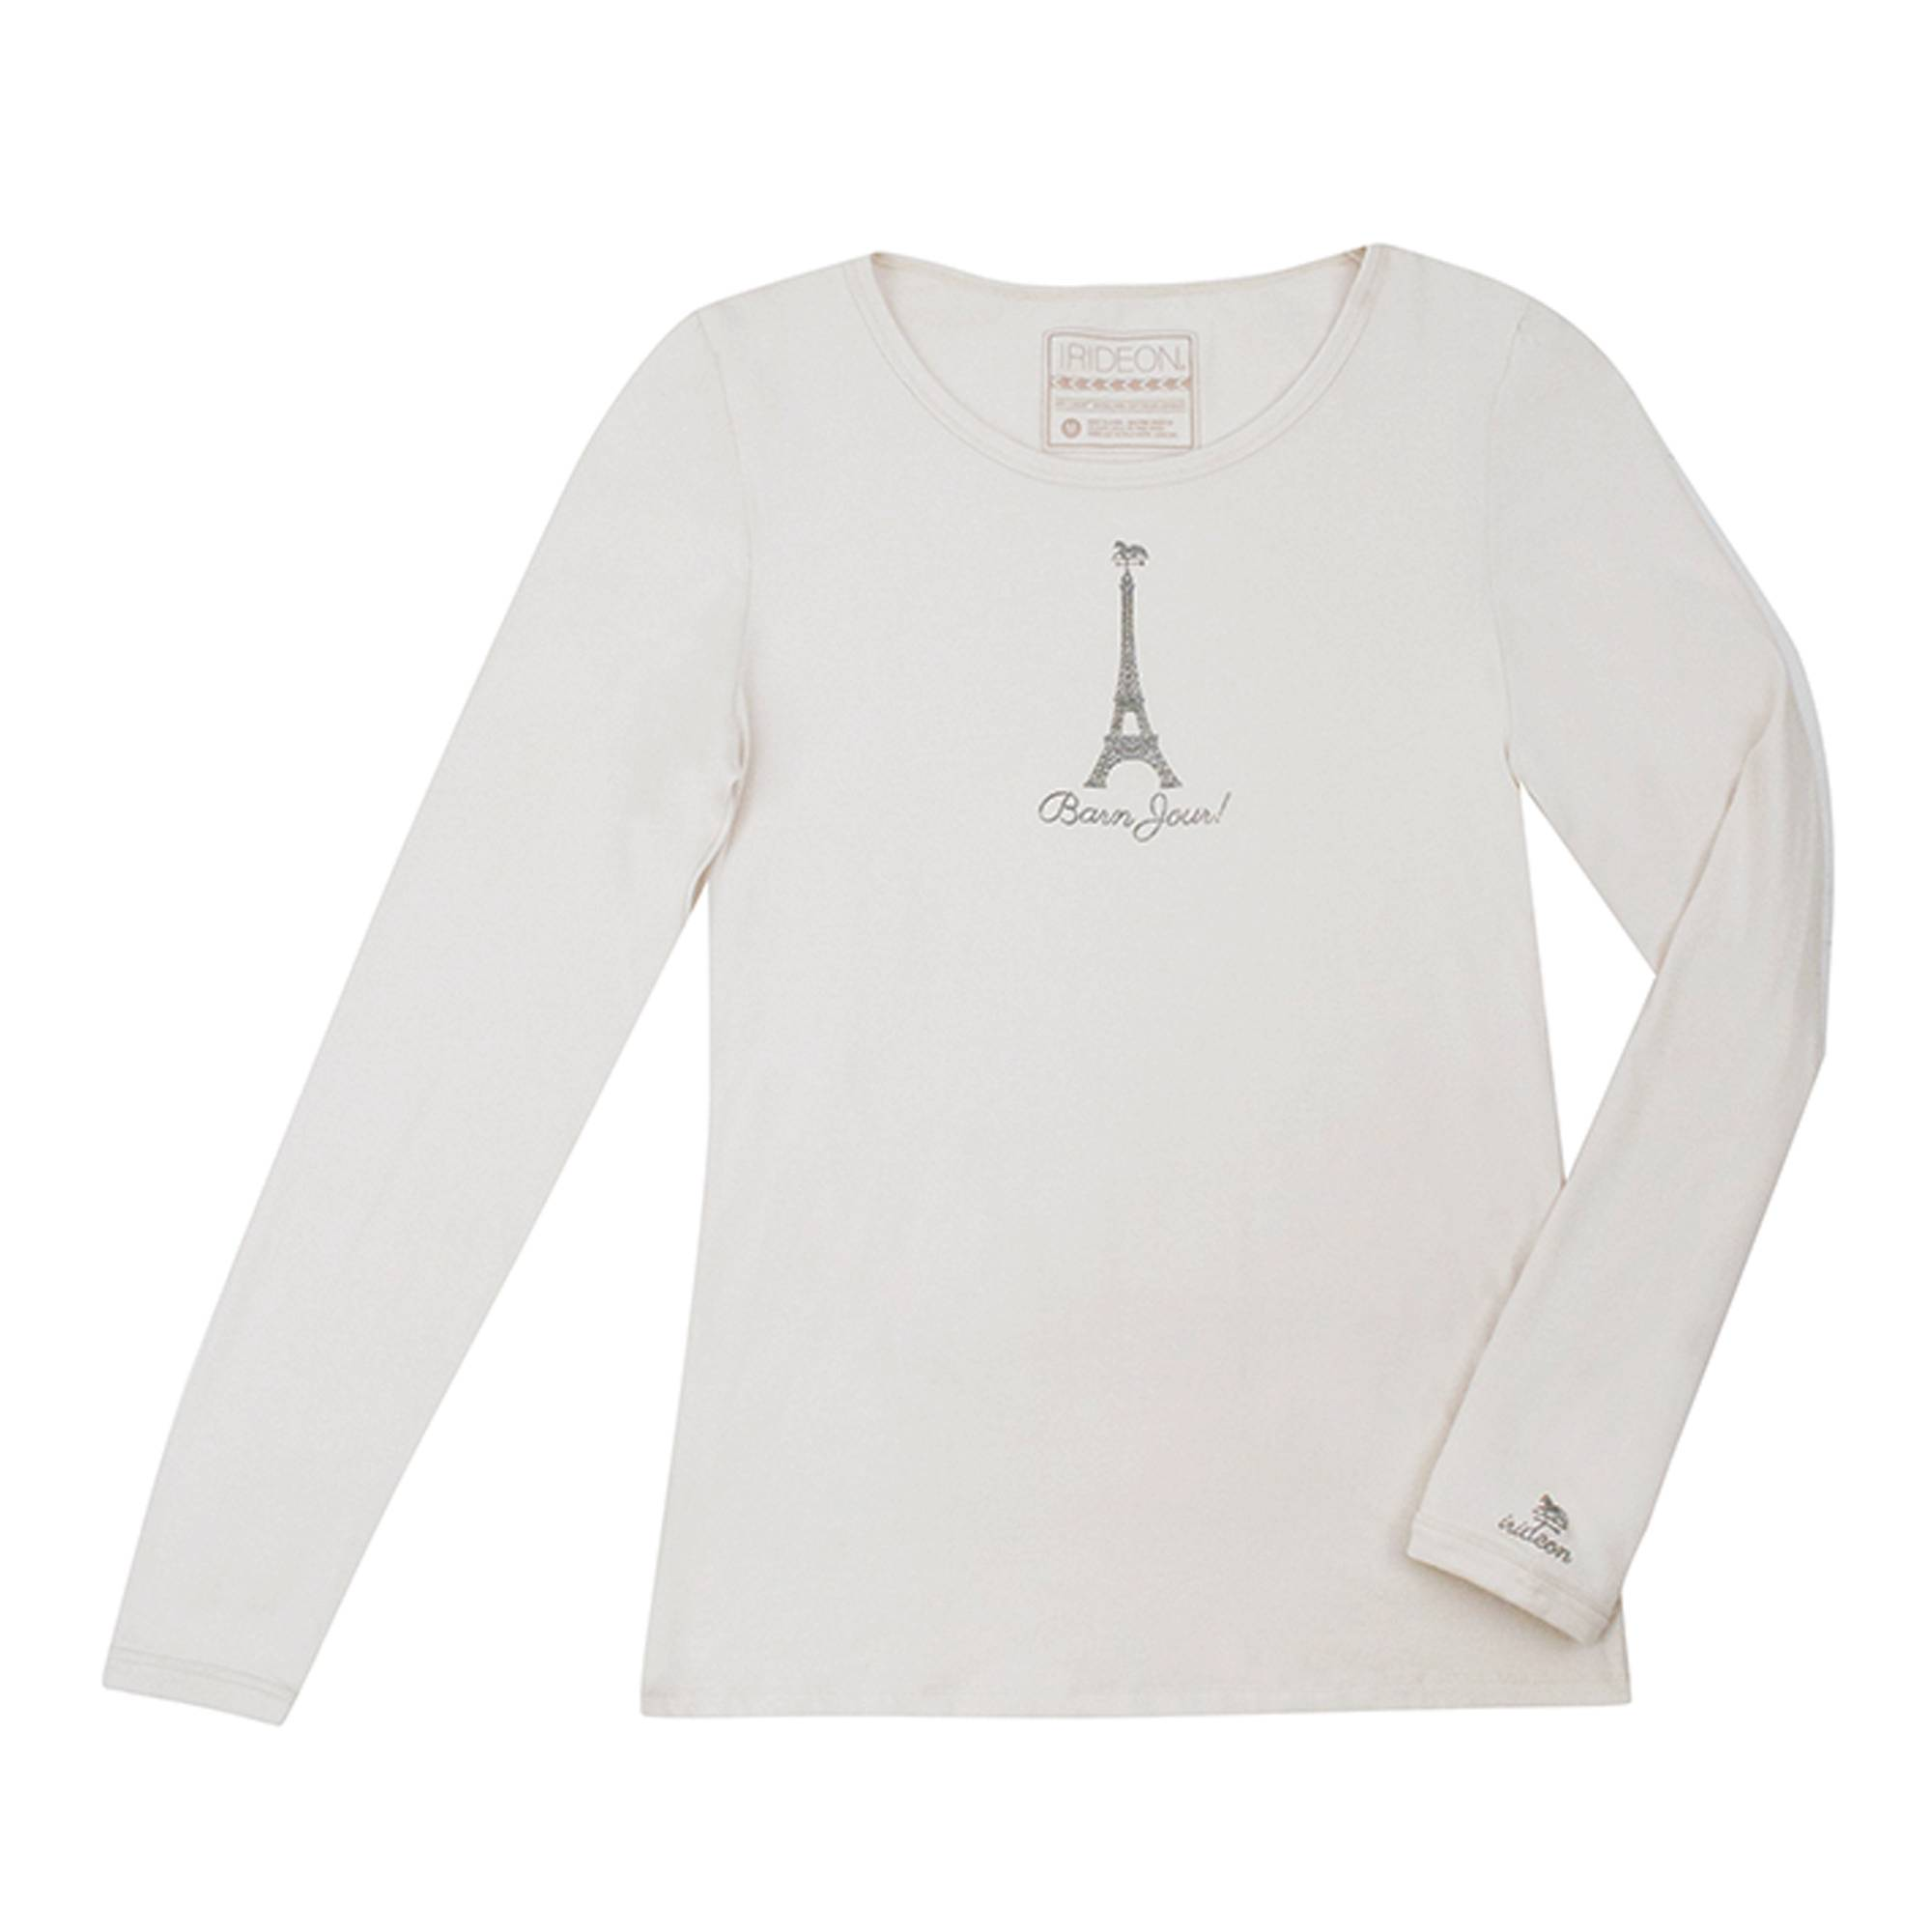 Irideon Ladies' Barn Jour Long Sleeve Tee